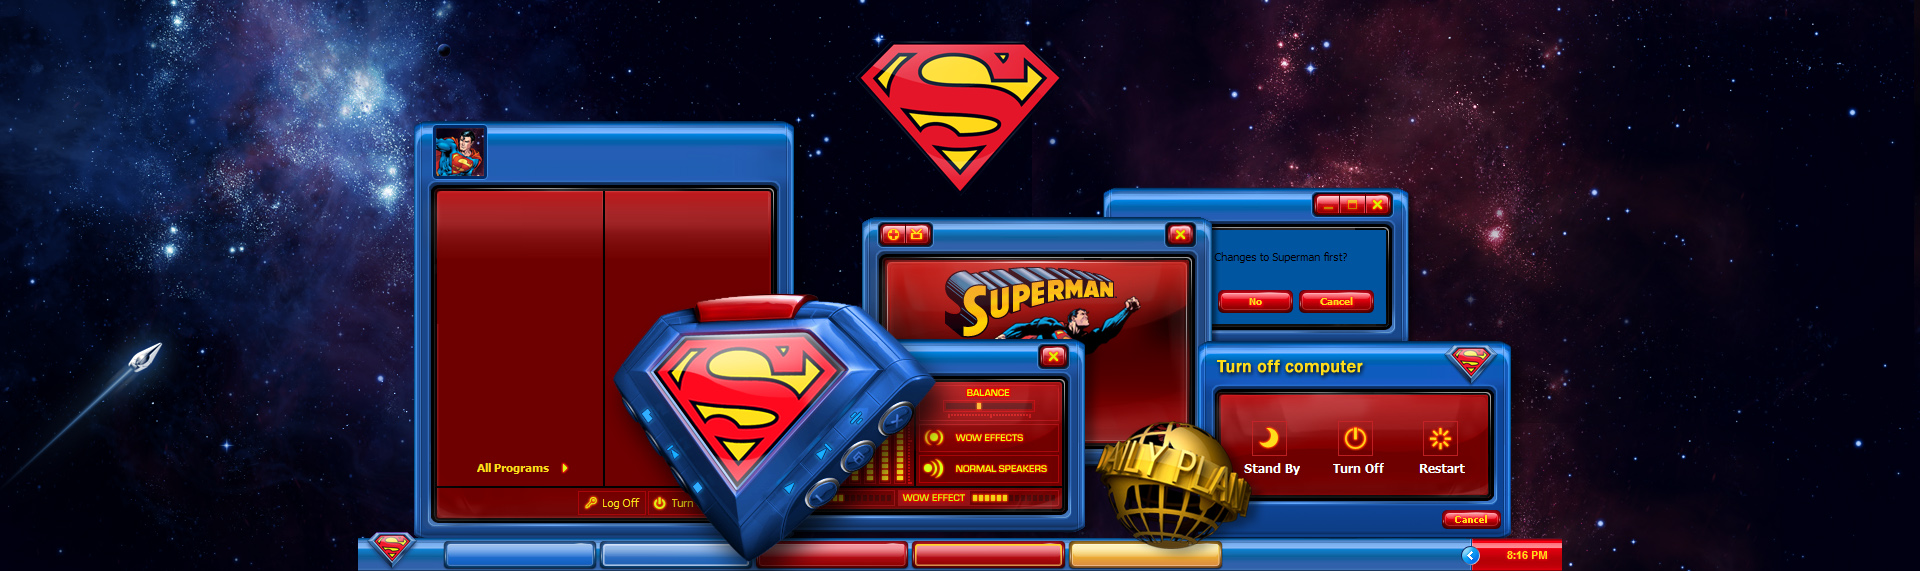 Alienware: Superman Special Edition  Client: Alienware Corporation  Alienware released limited-edition desktop & notebook systems inspired by DC Comics iconic Super Hero, Superman. Each system also includes a specially-designed Superman Windows desktop theme, custom icon set, wallpaper and an incredibly cool Windows Media Player skin. It is not available for download. SUPERMAN and all related characters and elements are trademarks of and DC Comics. (s06)